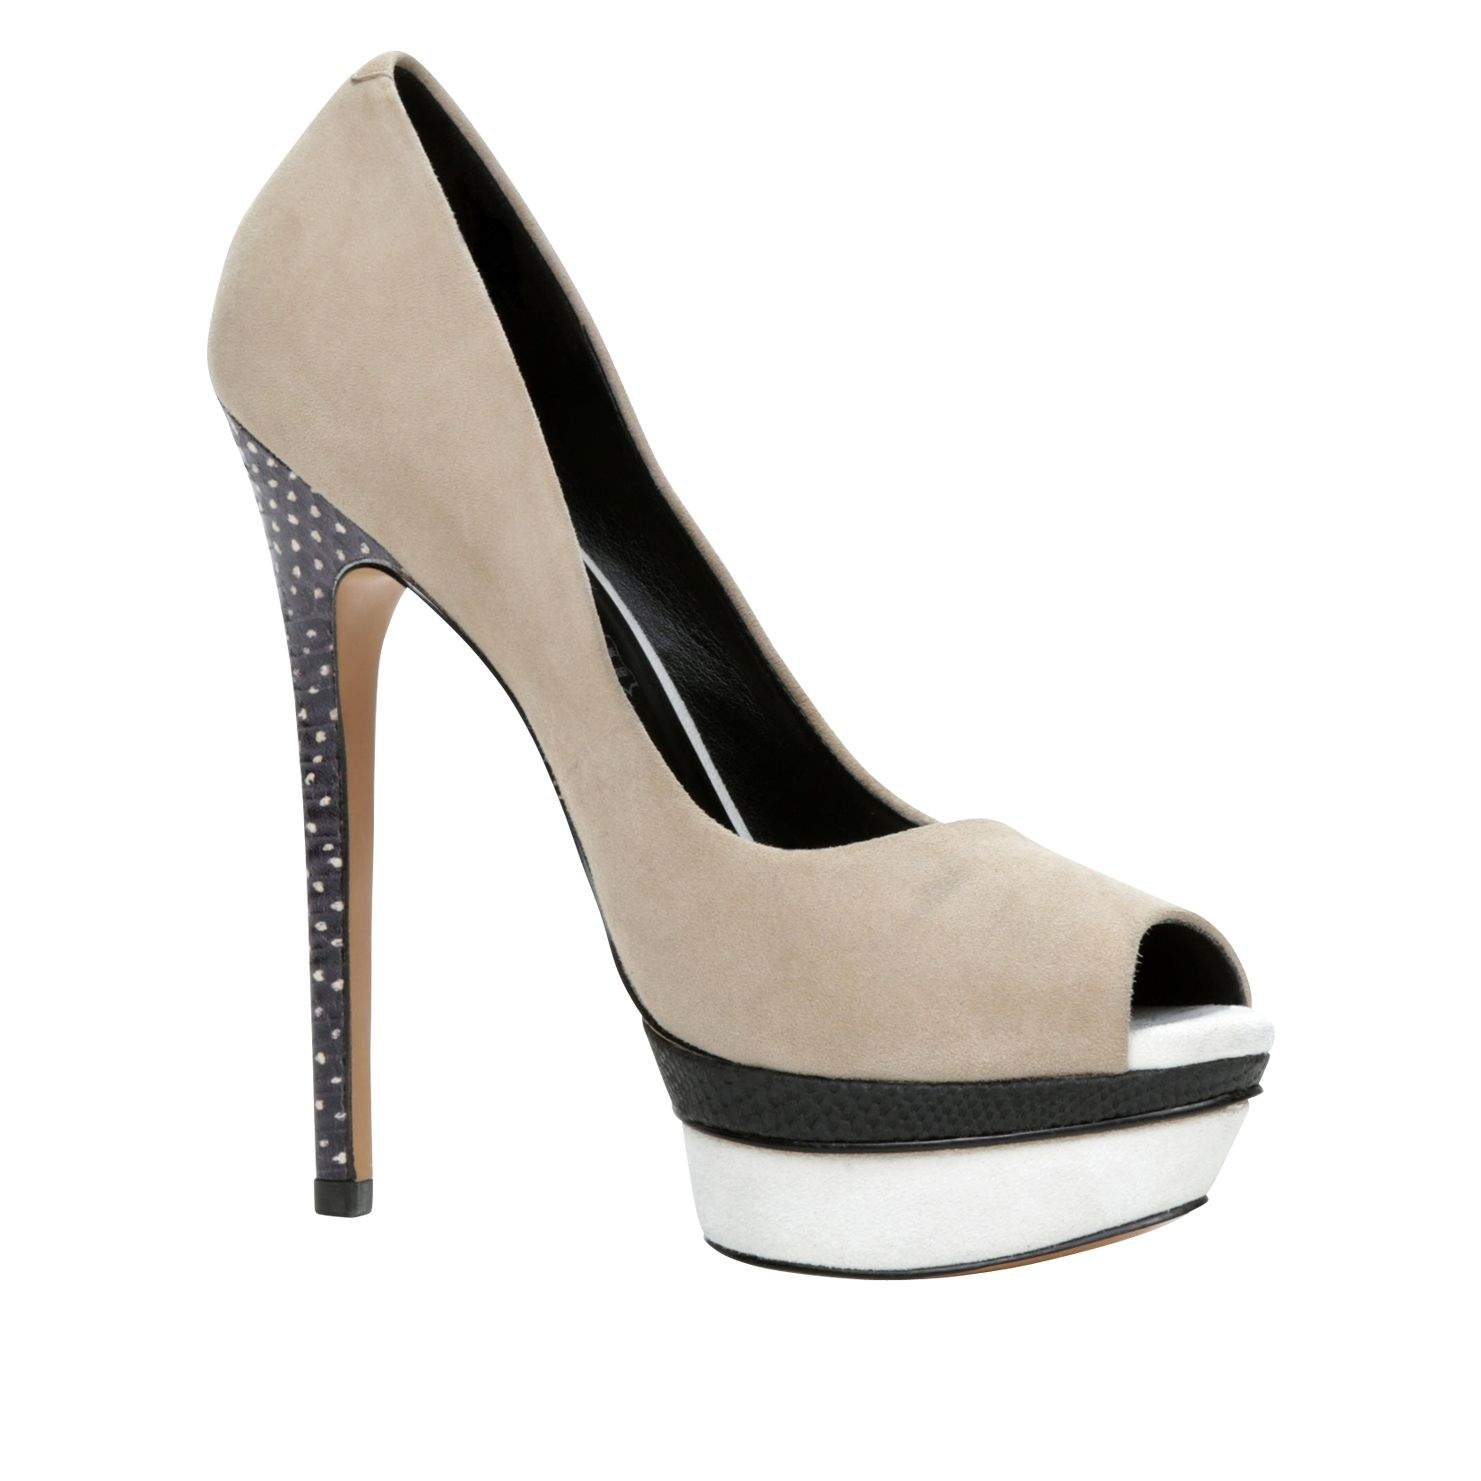 Nydeicia platform peep toe court shoes